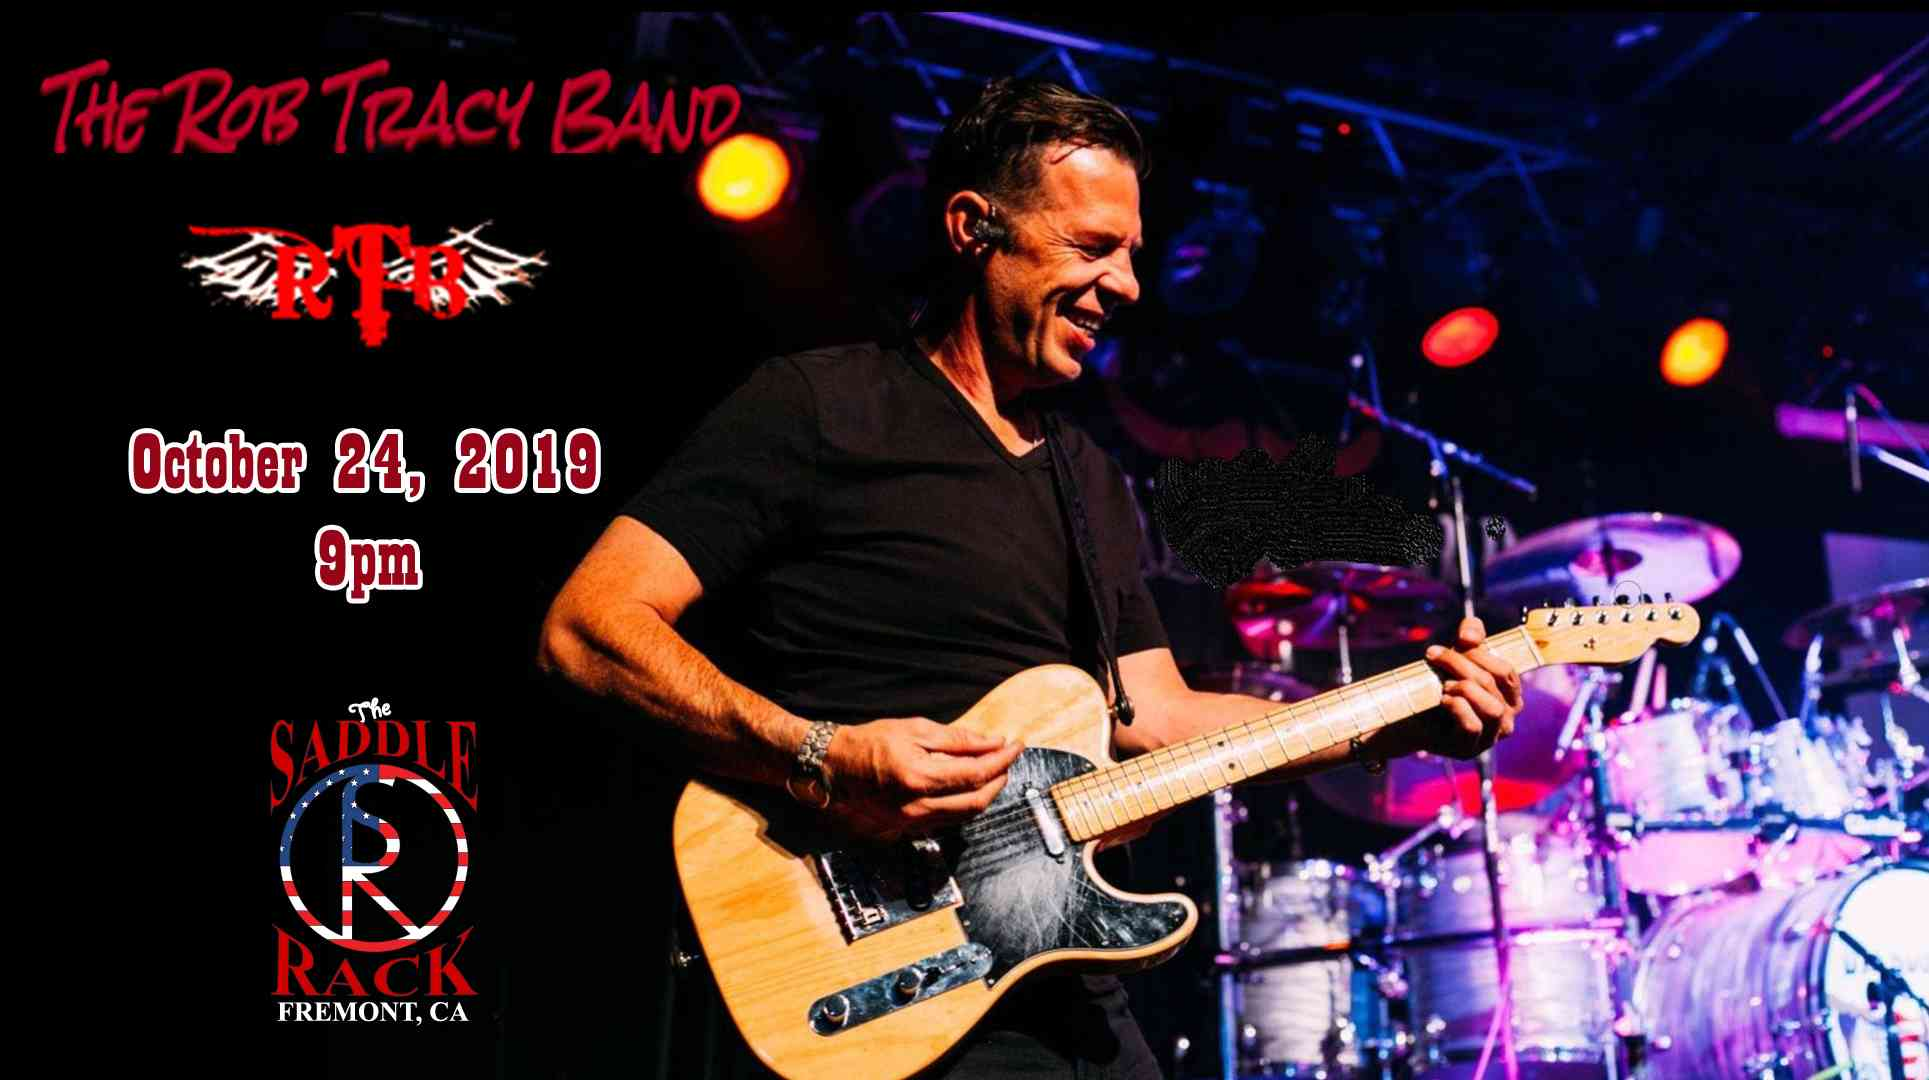 Rob_Tracy_band_2019-341991.jpg